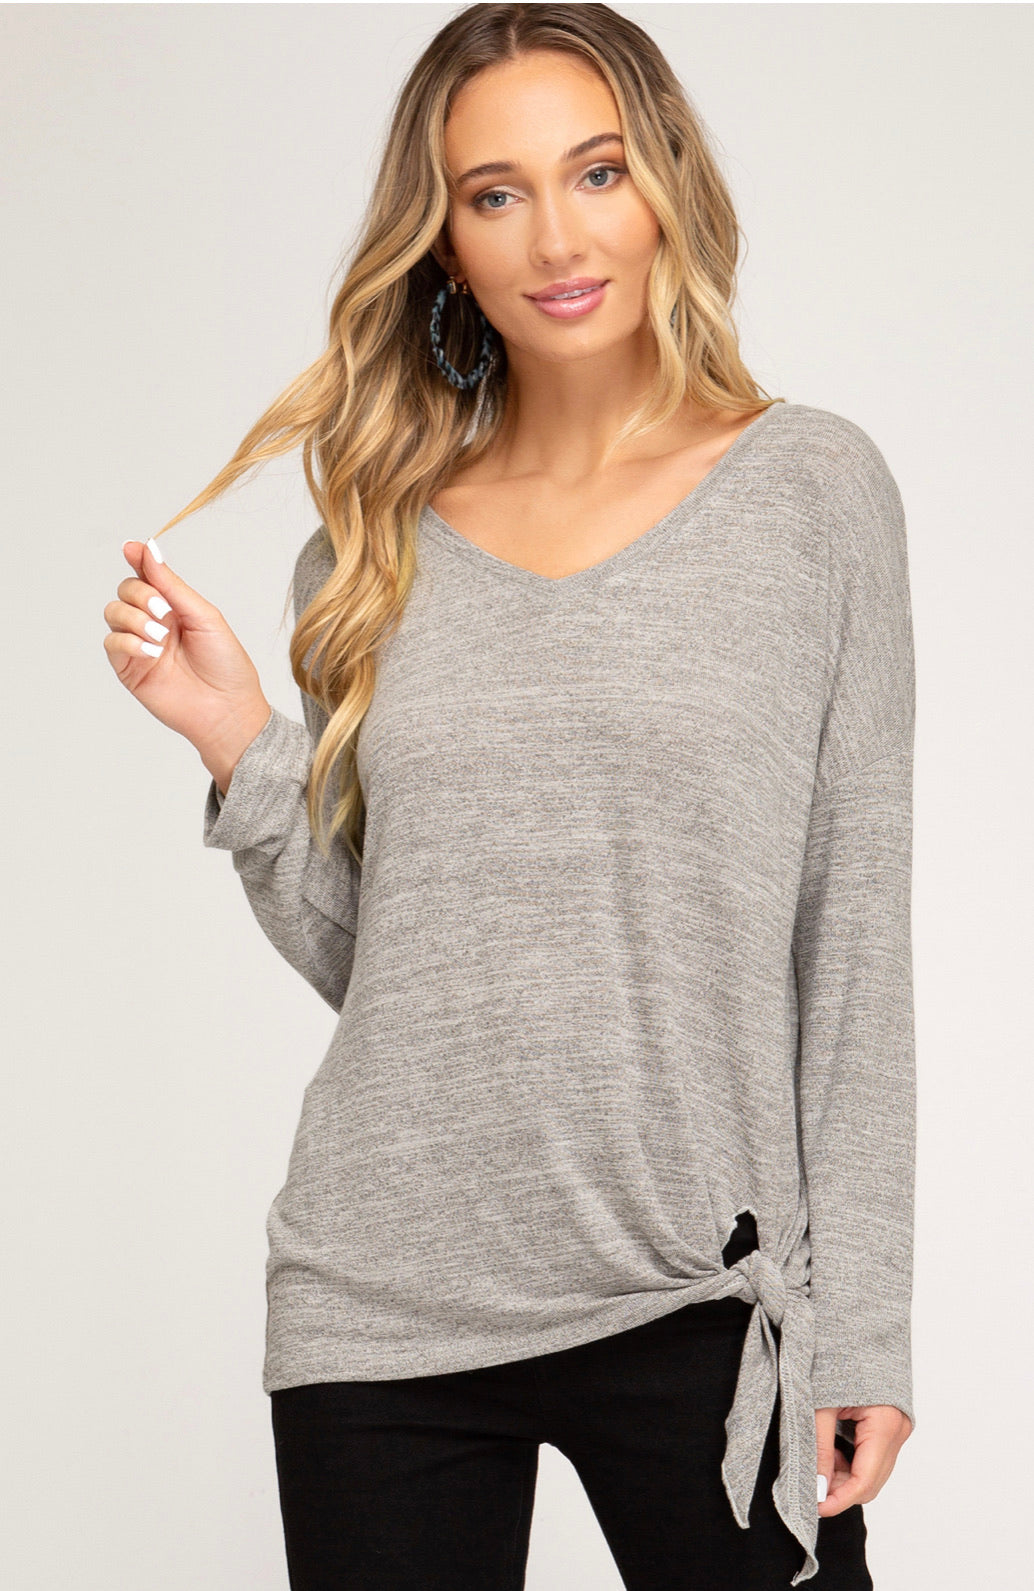 V-Neck Knit Top with Side Tie - Blush Boutique